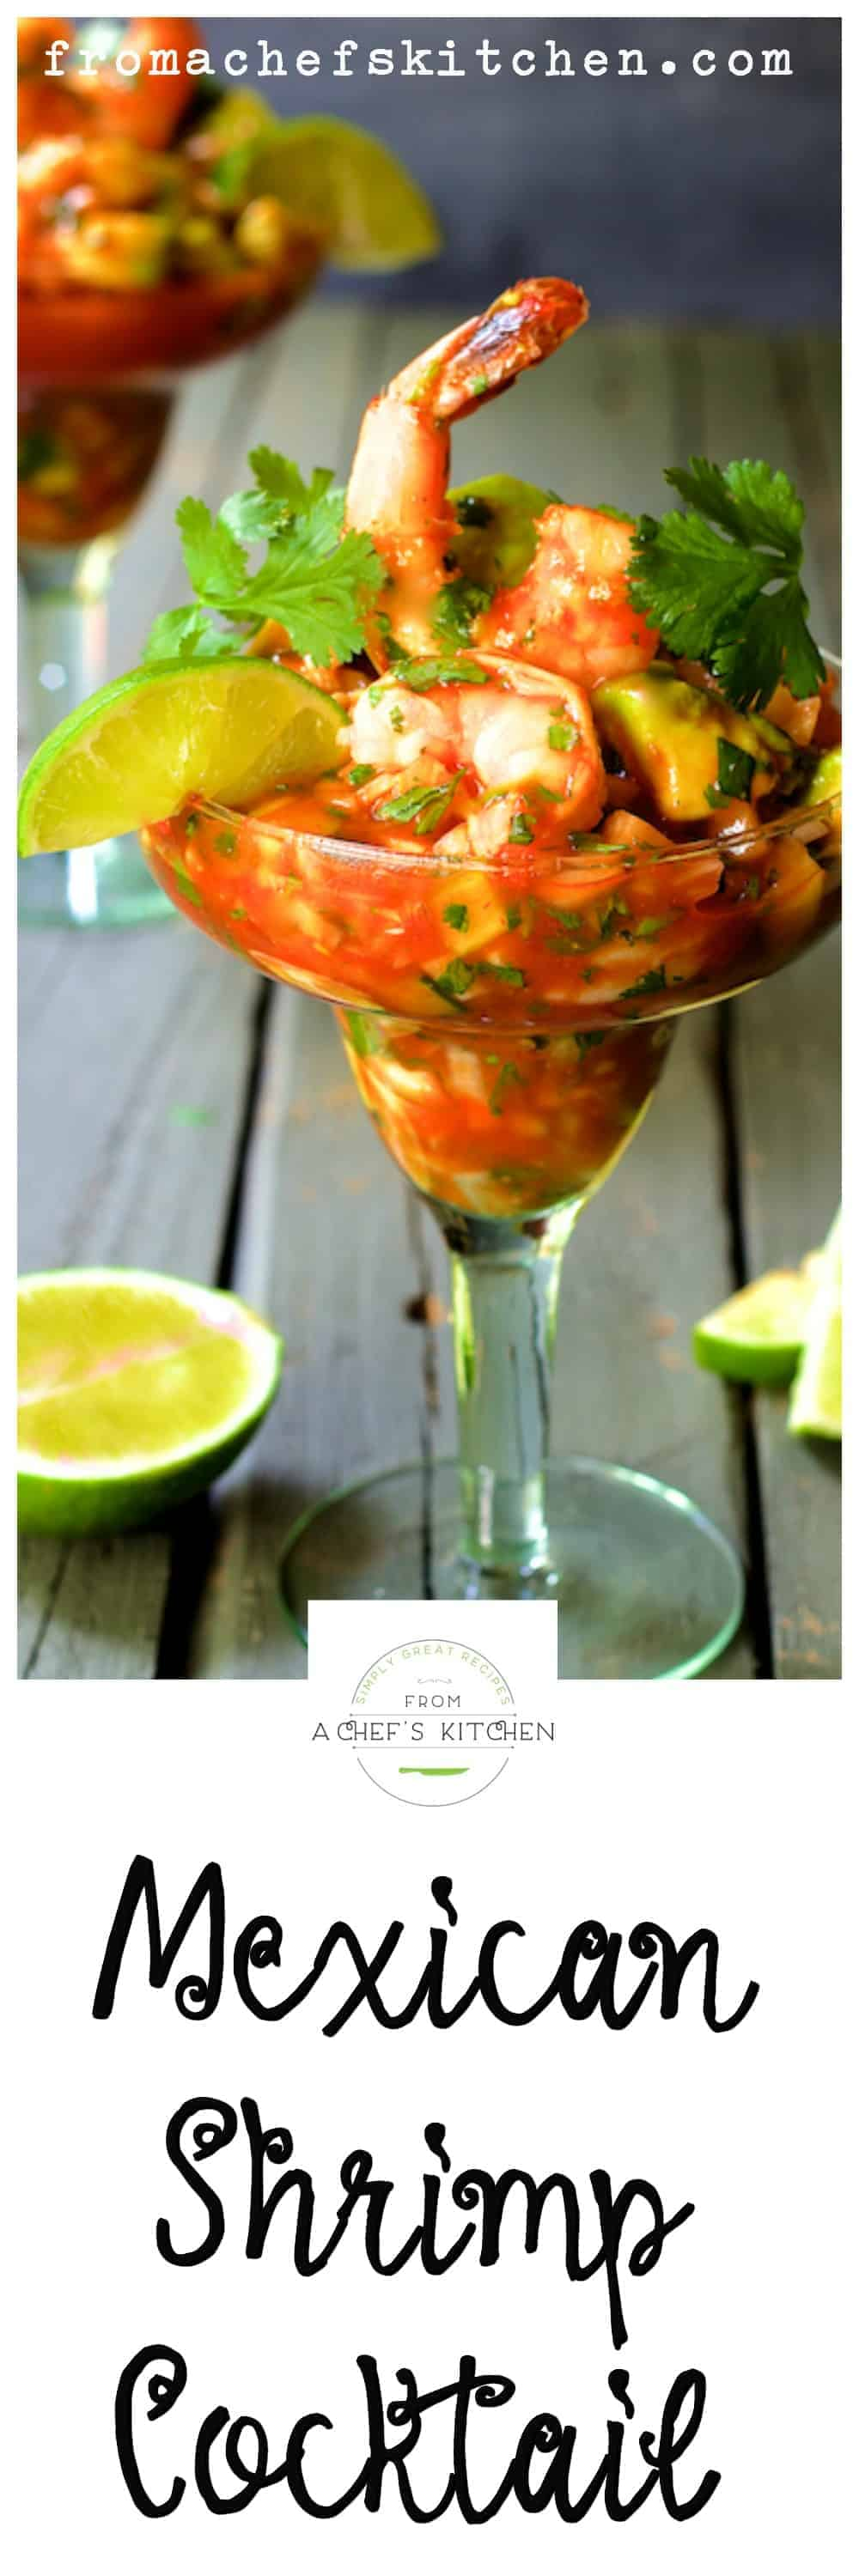 Cóctel de Camarónes, simply known as Mexican Shrimp Cocktail, doesn't resemble an American shrimp cocktail at all.  I'll bet you'll find this variation way more tasty and exciting!